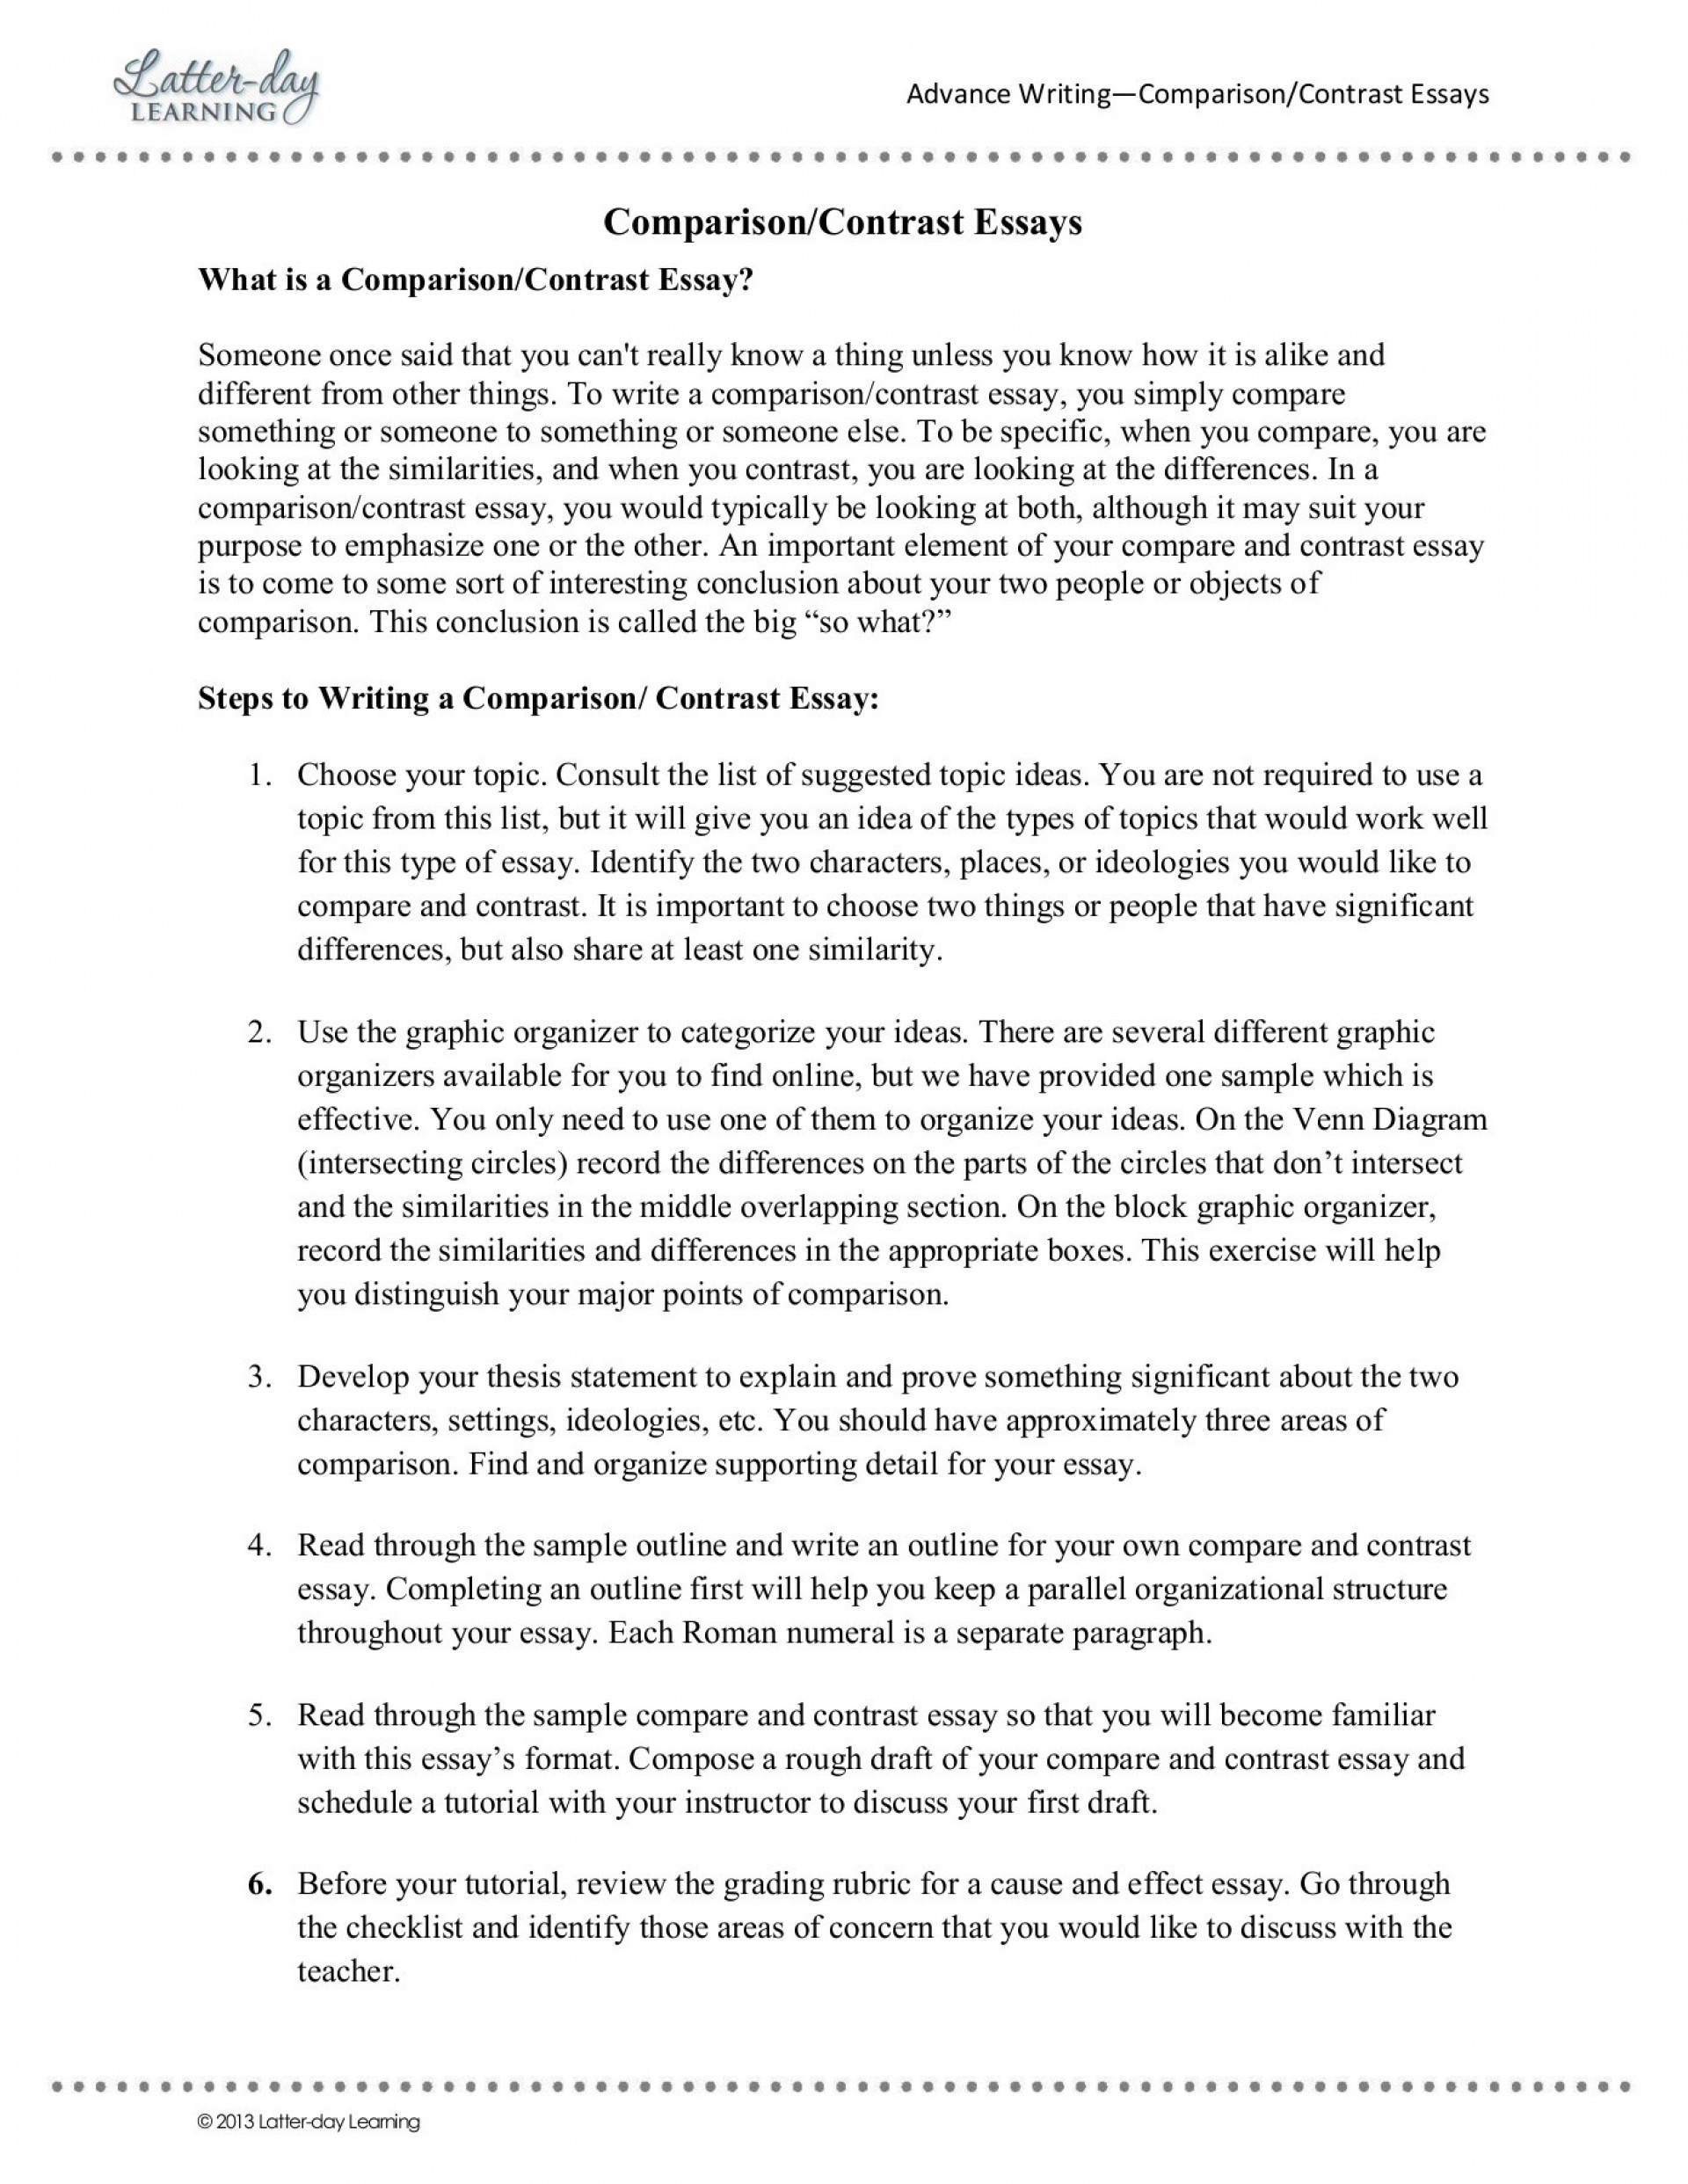 016 Compare And Contrast Essays Essay Awful Free Examples For College Topics Middle School 1920